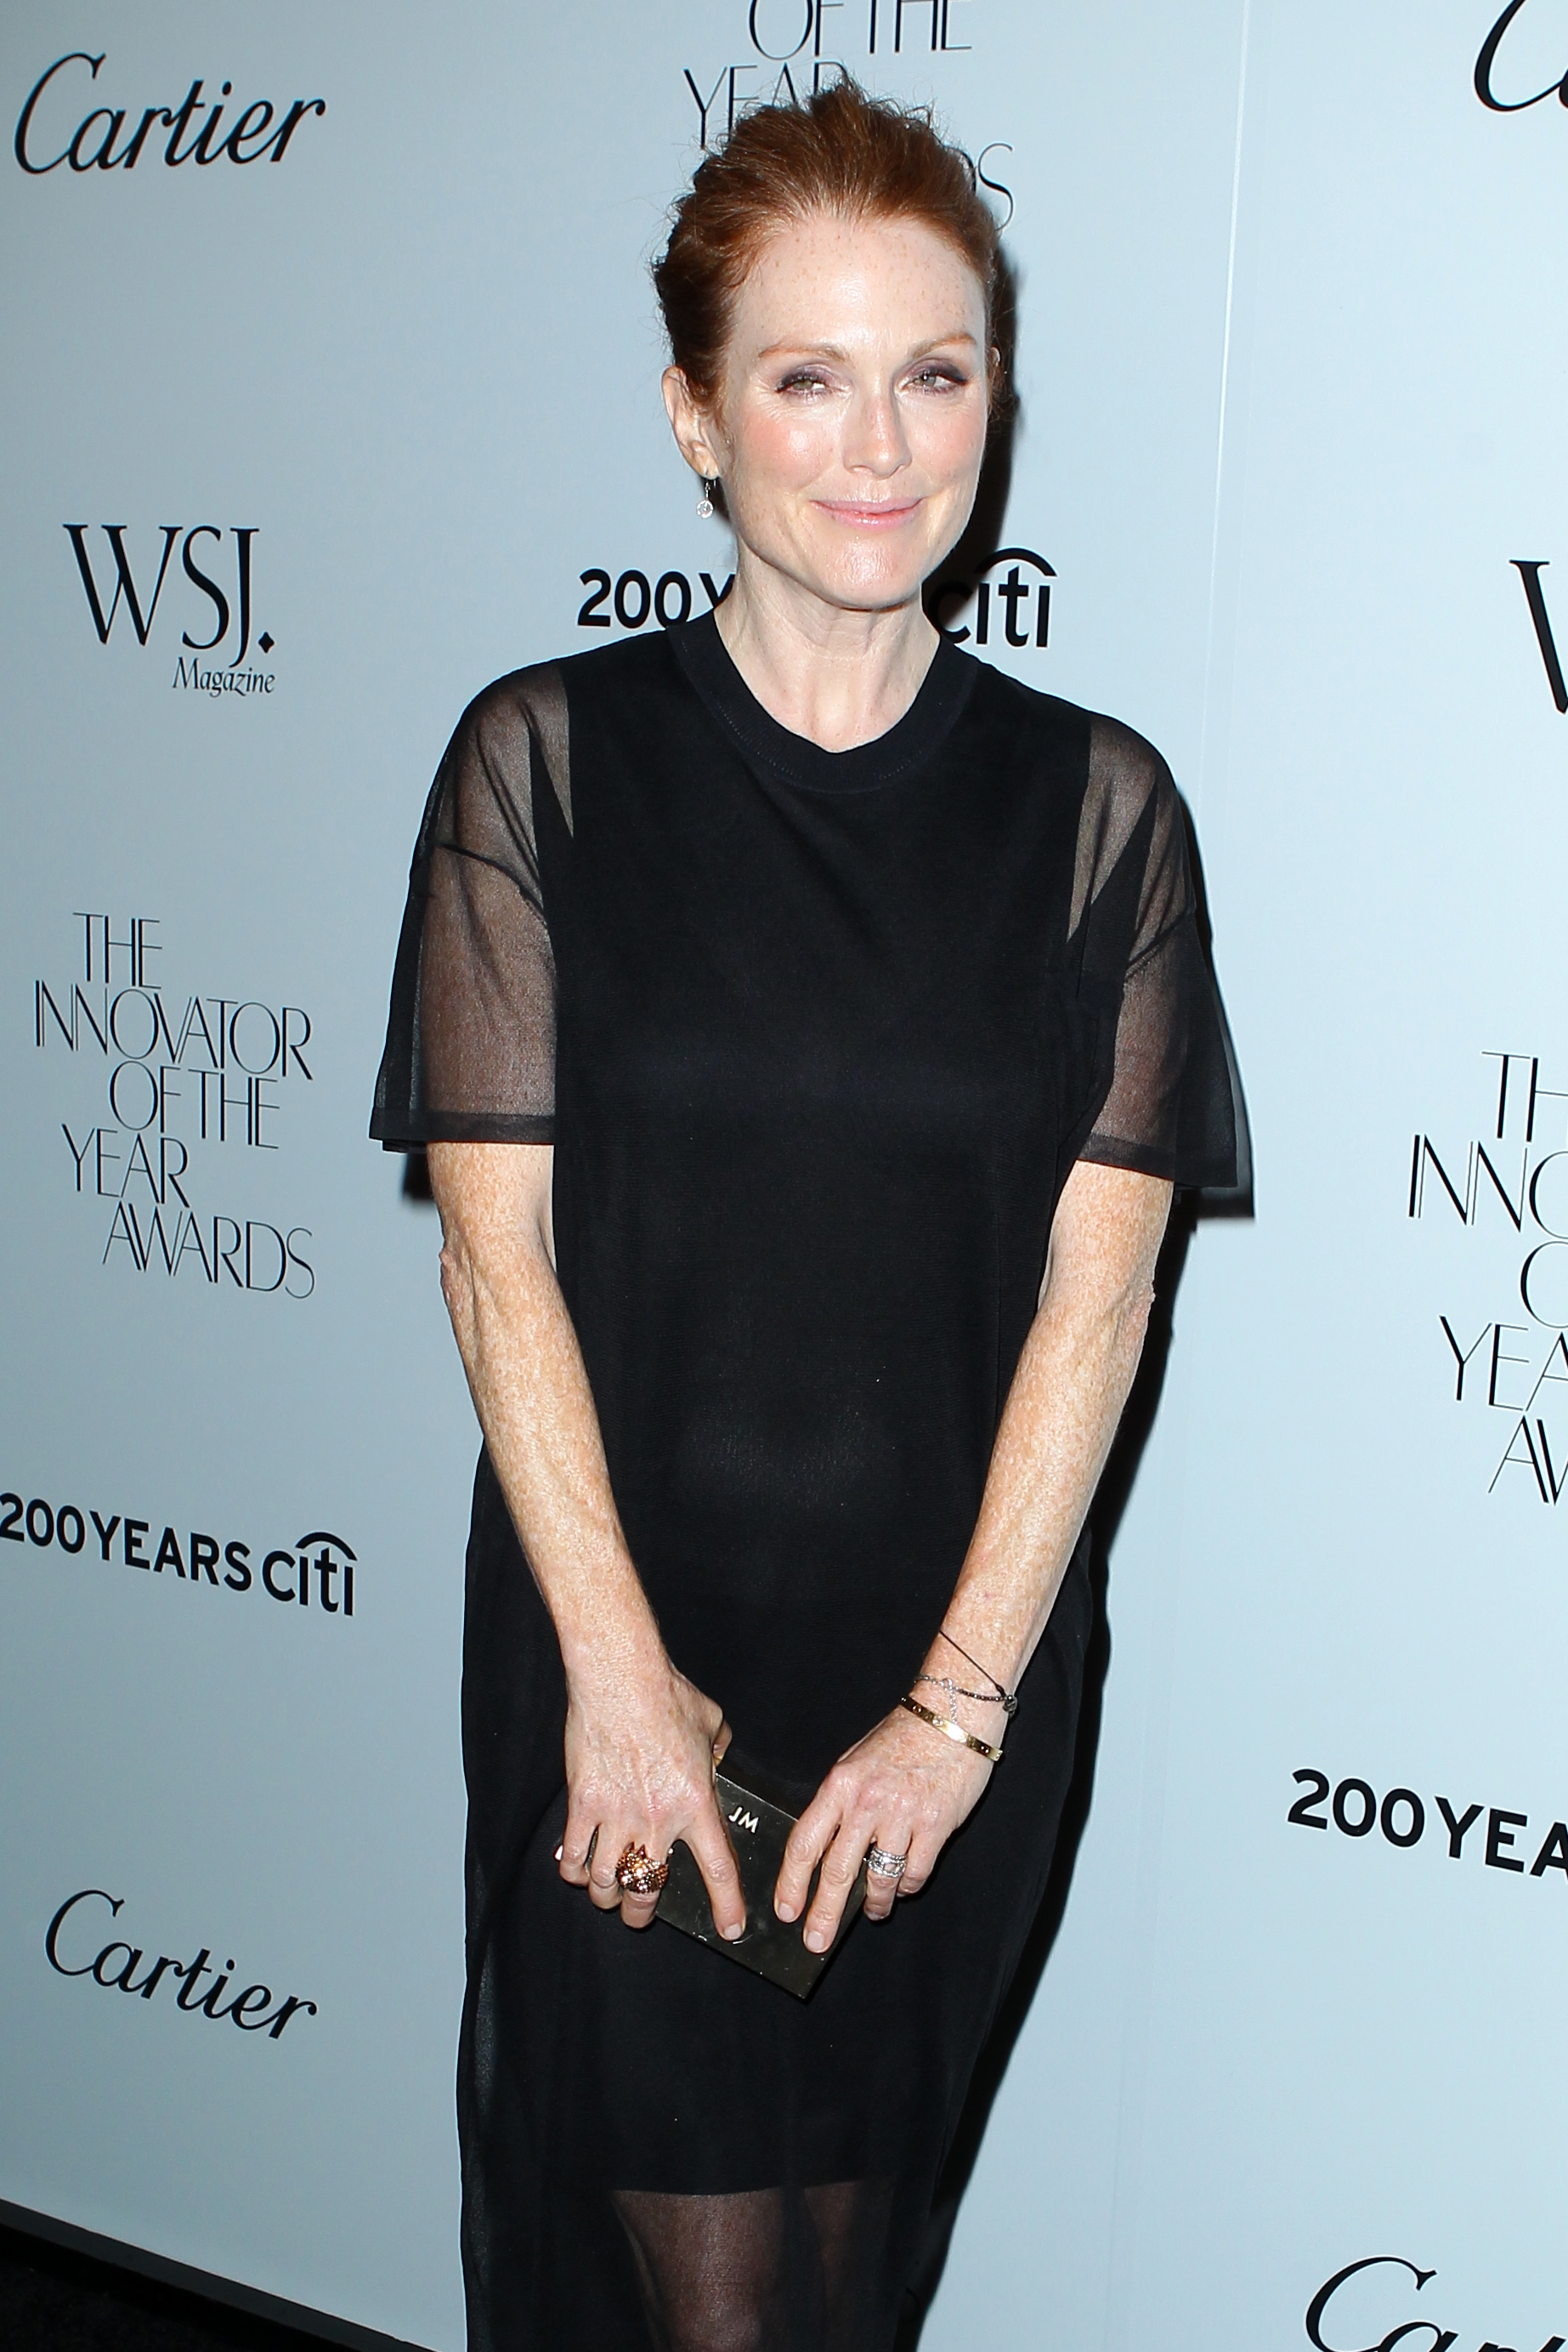 Actress Julianne Moore arrives at the Wall Street Journal Magazine 2012 Innovator of the Year Awards, presented by Cartier and Citi at MOMA in New York City. <P> Pictured: Julianne Moore <P> <B>Ref: SPL449086  181012  </B><BR/> Picture by: Christopher Peterson/Splash News<BR/> </P><P> <B>Splash News and Pictures</B><BR/> Los Angeles:310-821-2666<BR/> New York:212-619-2666<BR/> London:870-934-2666<BR/> <span id=